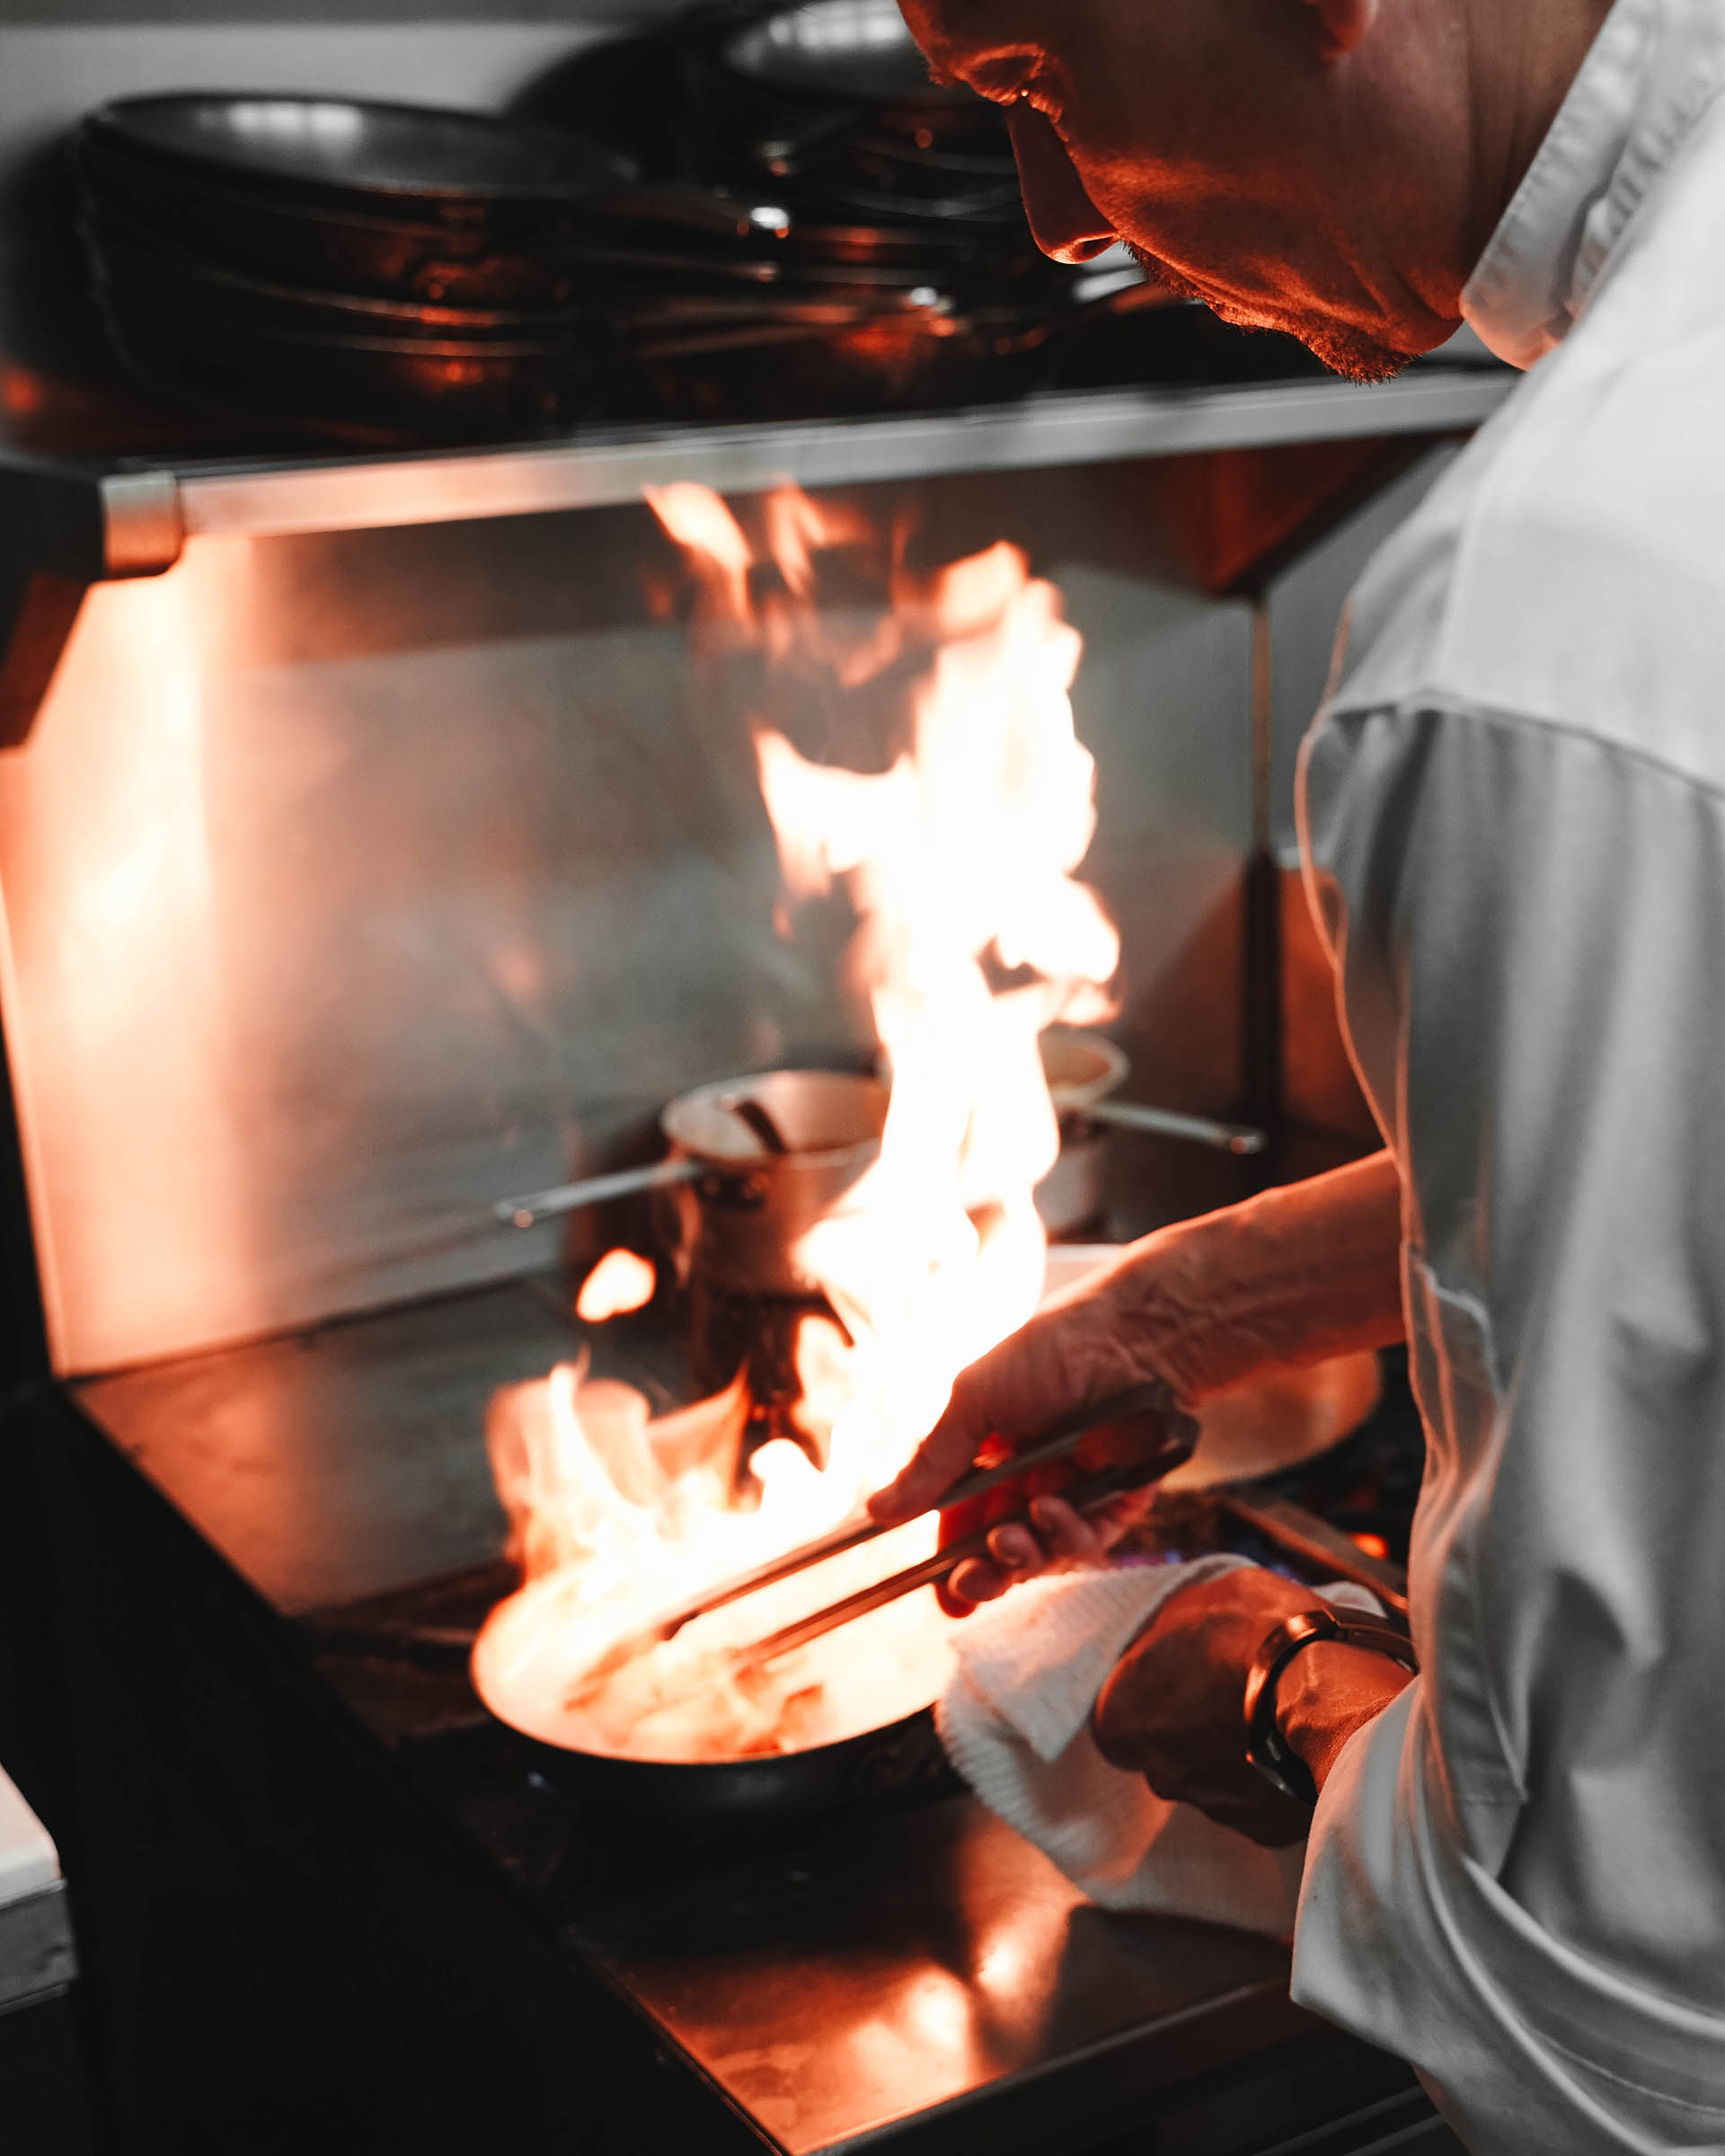 Zahir Namane - Image of cook work in restaurant from Freejpg